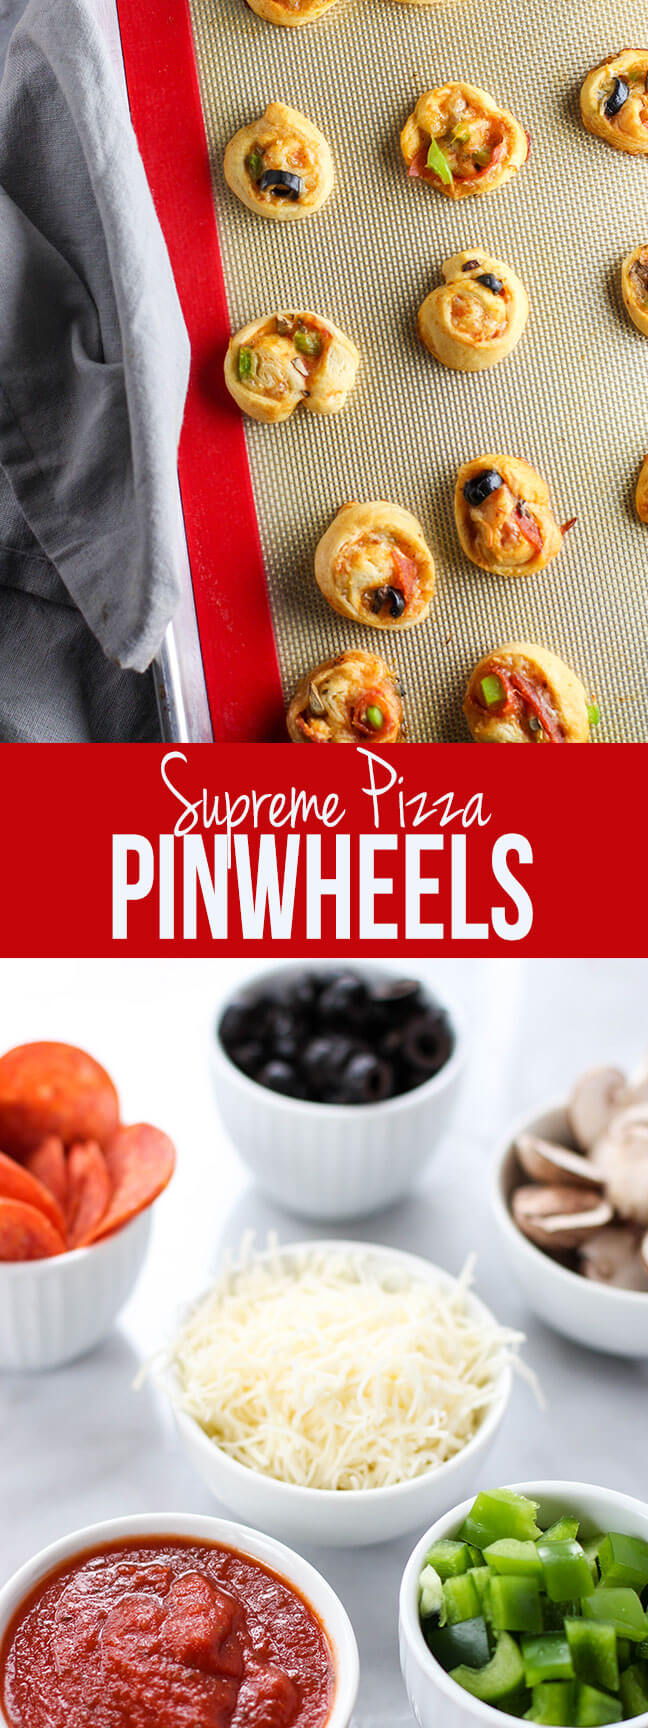 Pizza pinwheels, easy, tasty, and party perfect